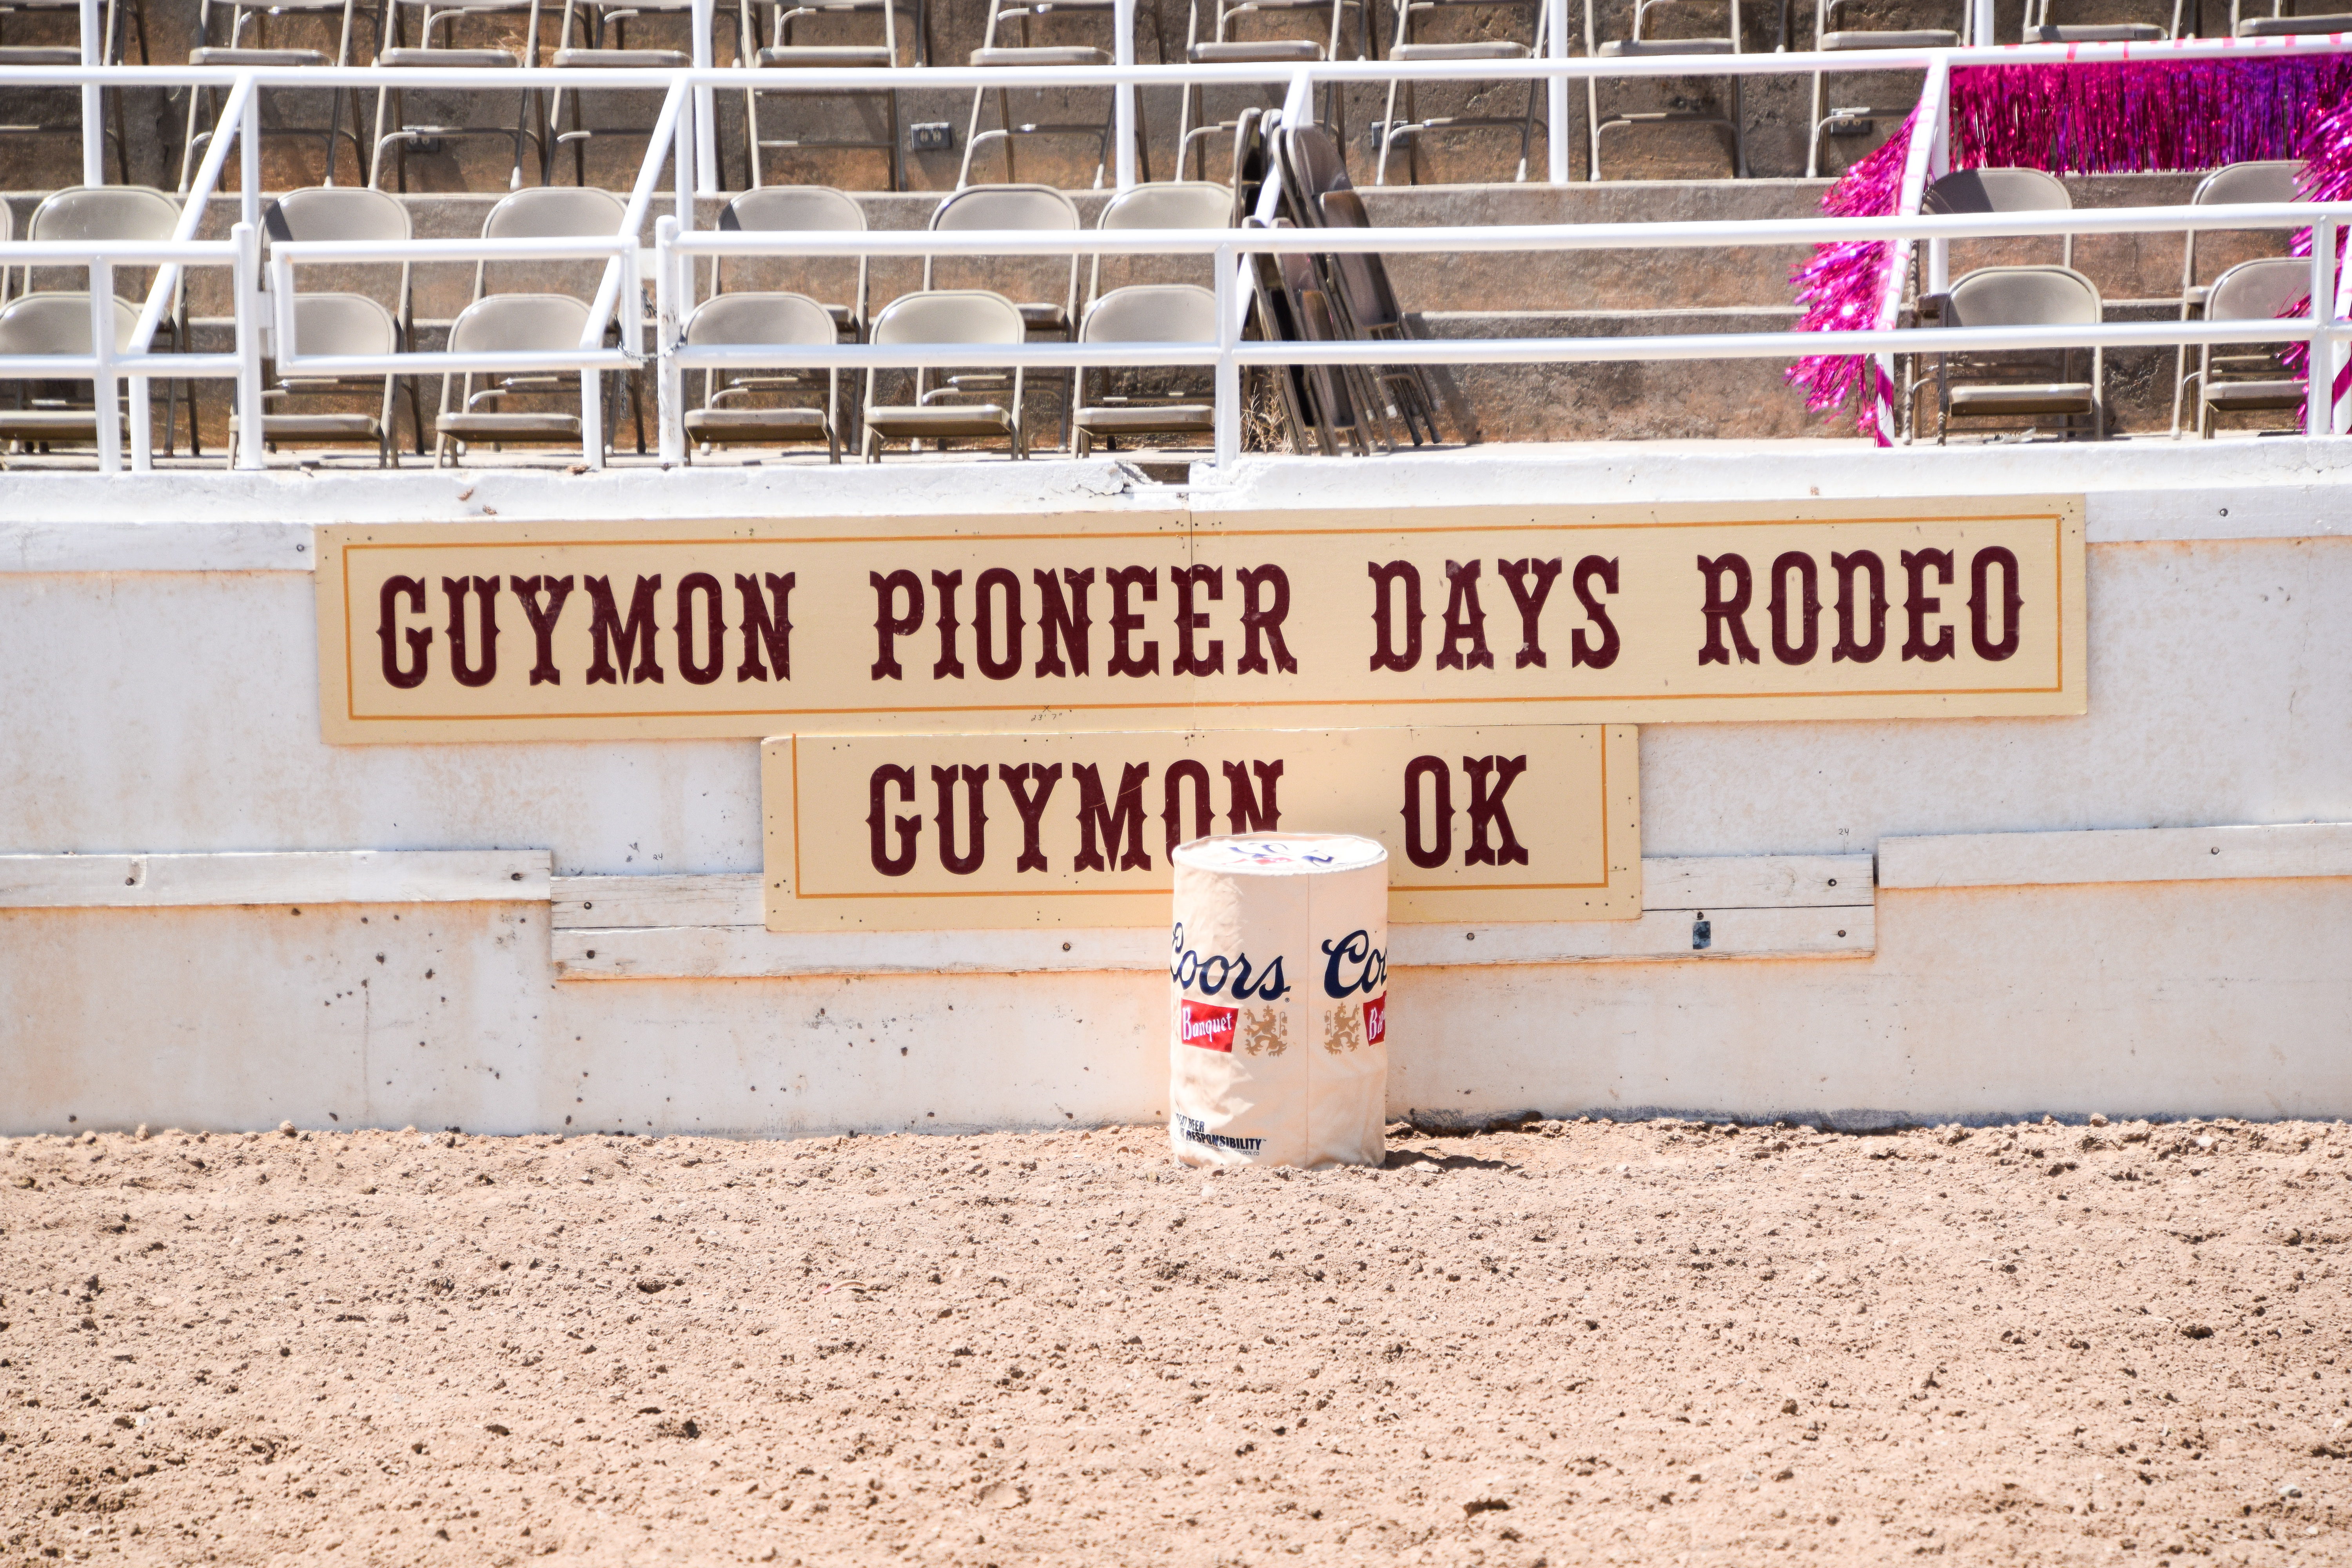 Pioneer-Days-rodeo-arena.jpg#asset:1988